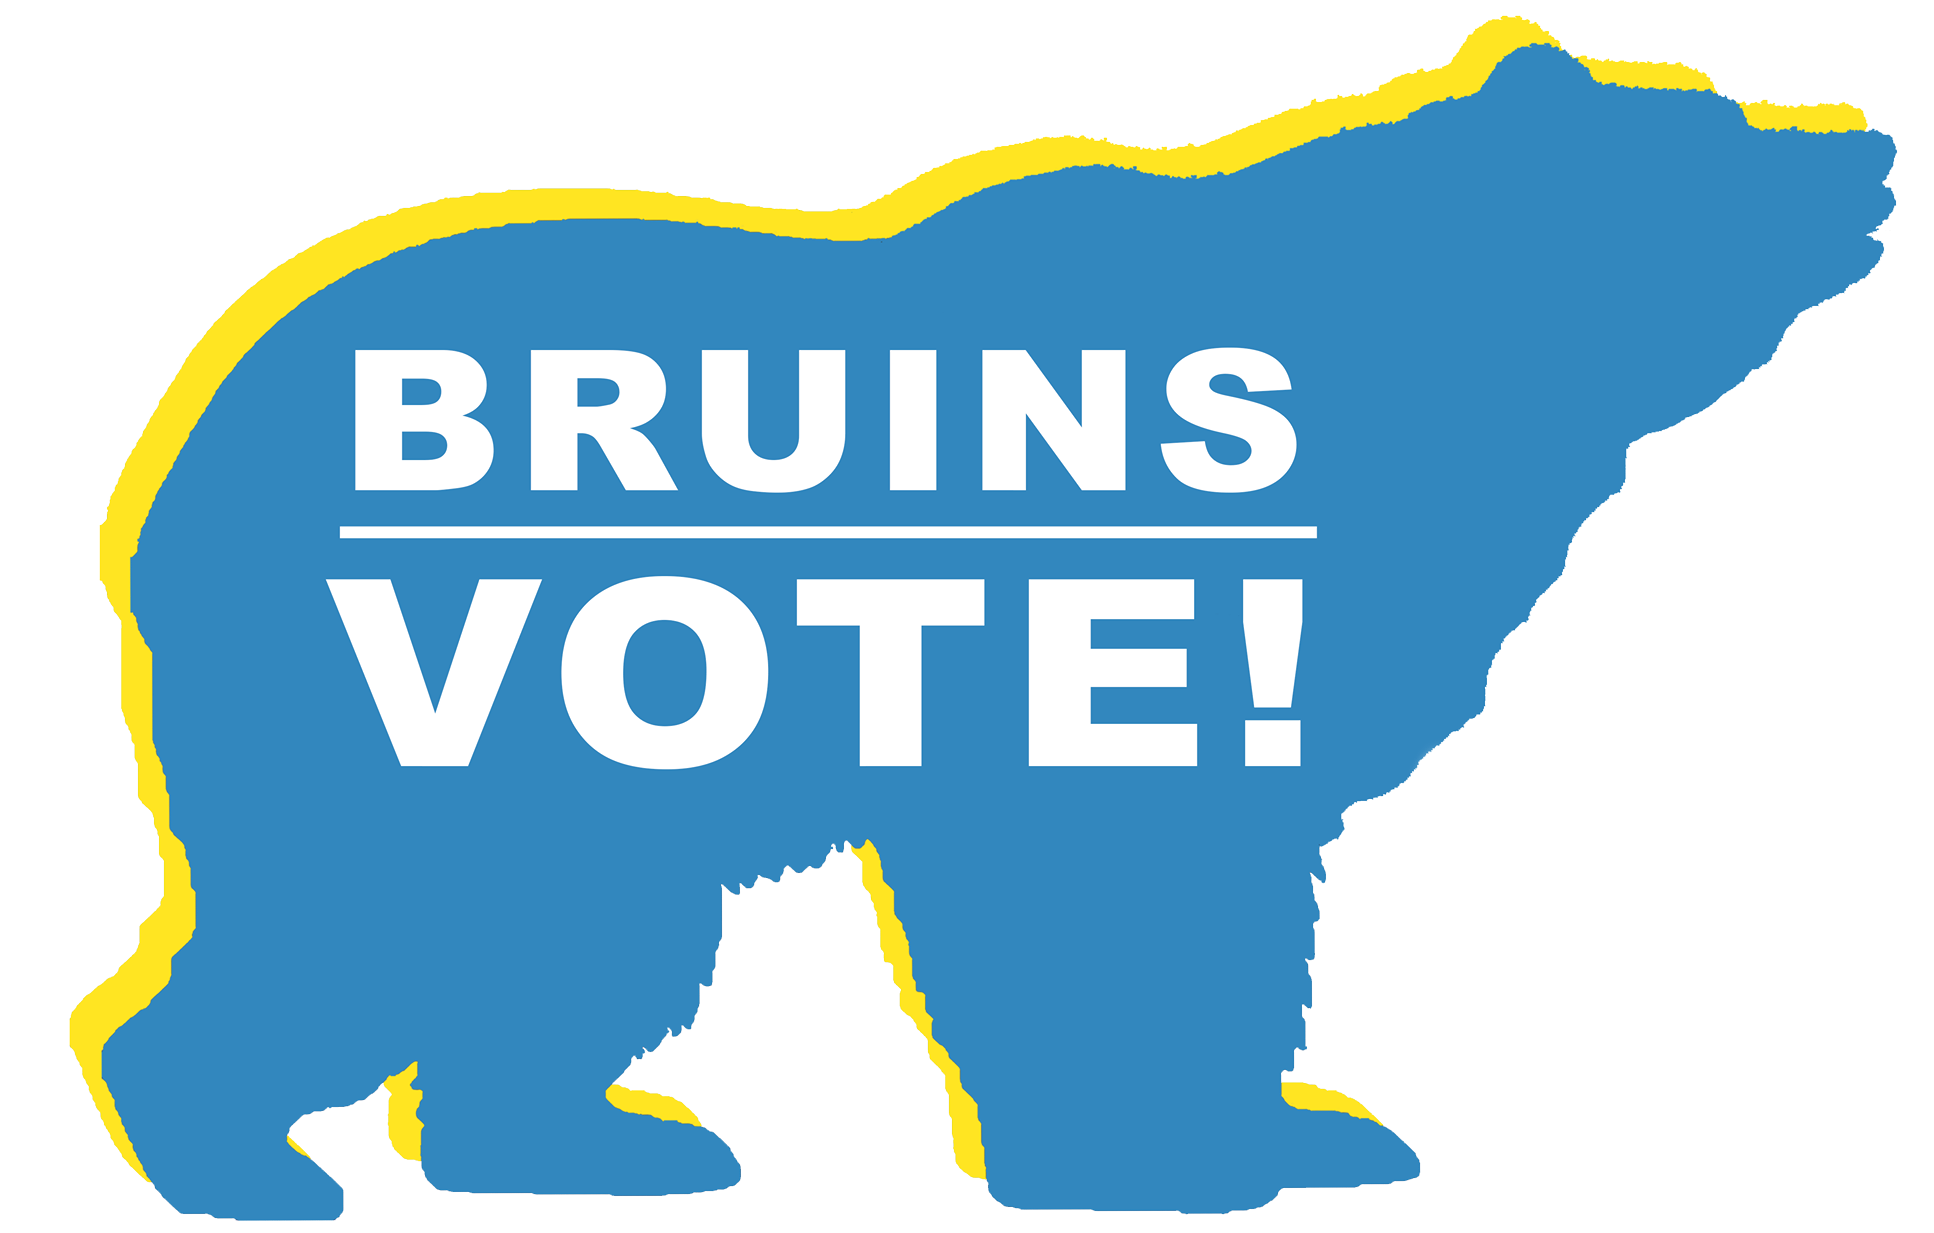 Bruins Vote